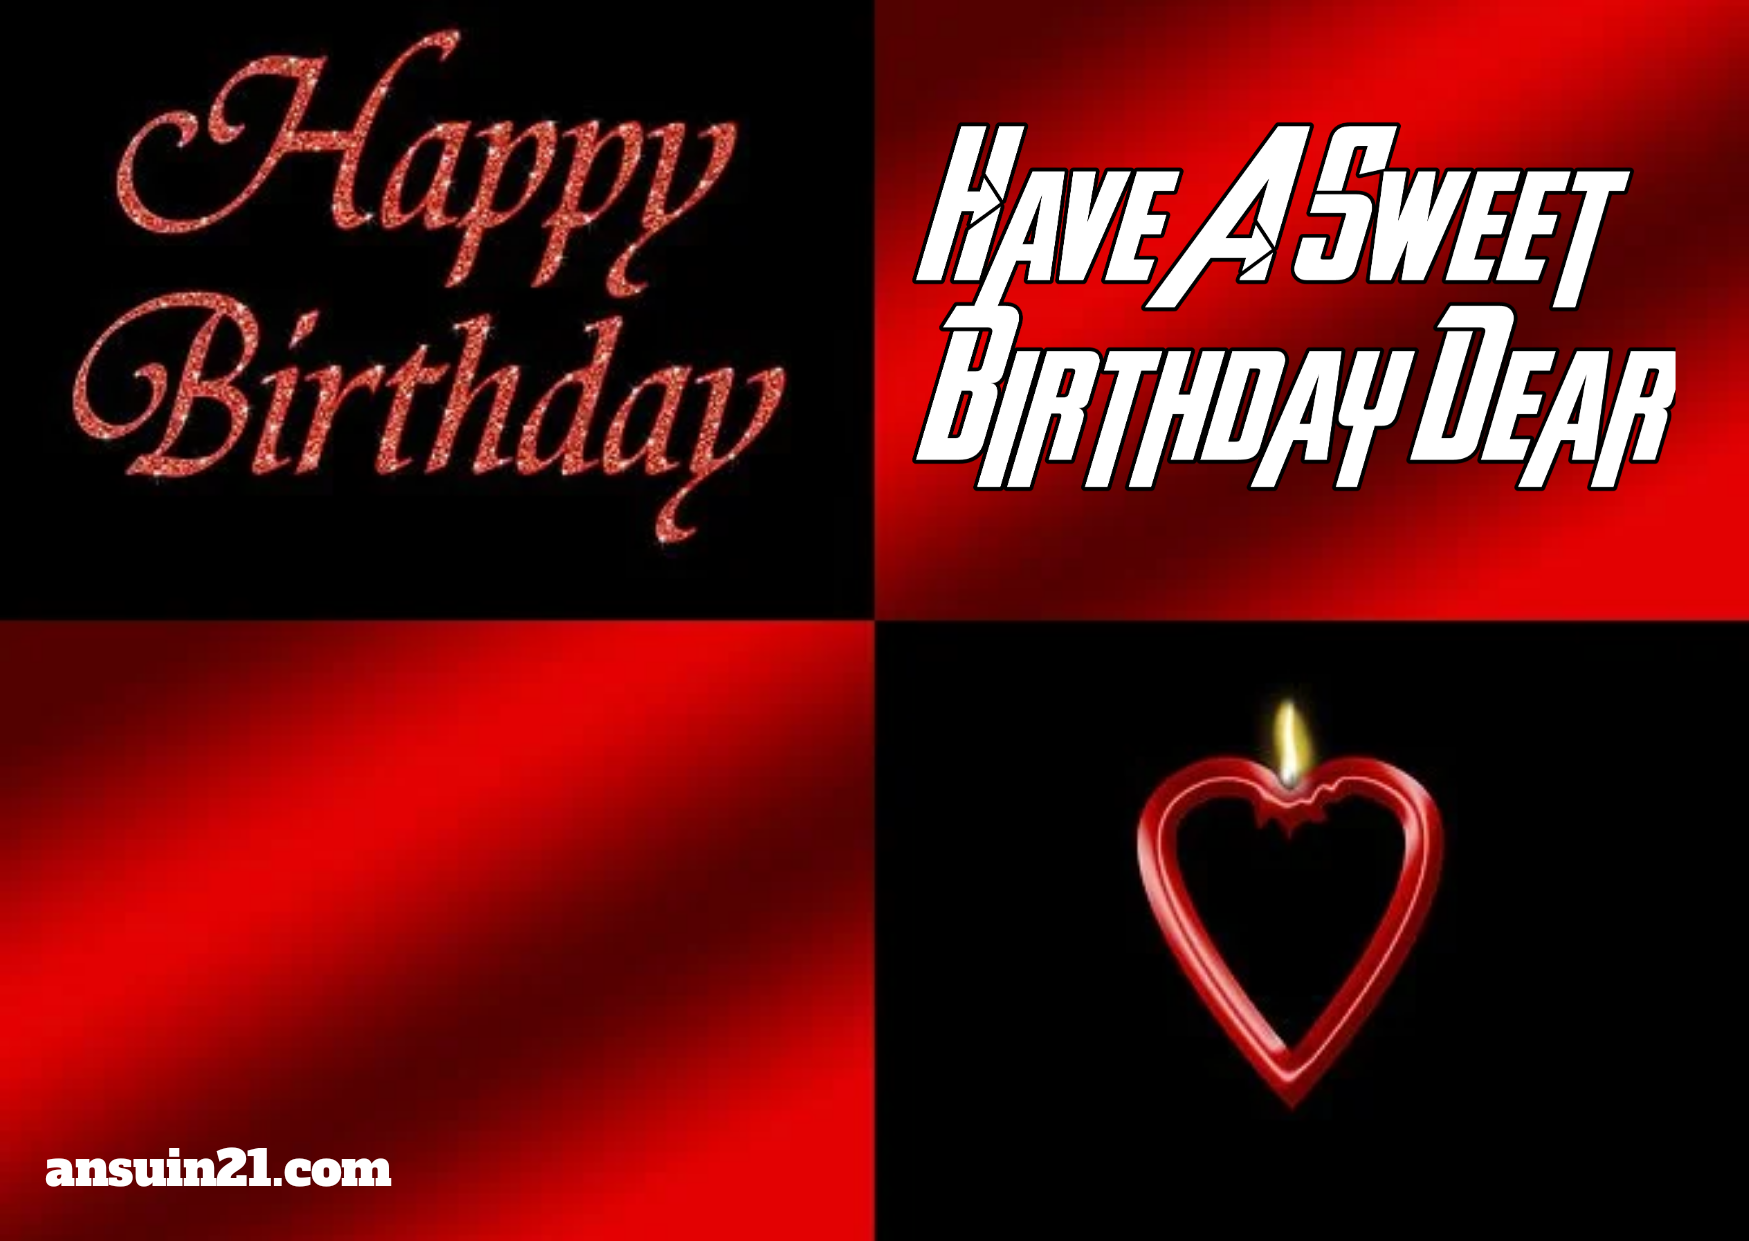 200 Best Happy Birthday Son Wishes, HD Images, Status, SMS, Quotes in English for WhatsApp free download,